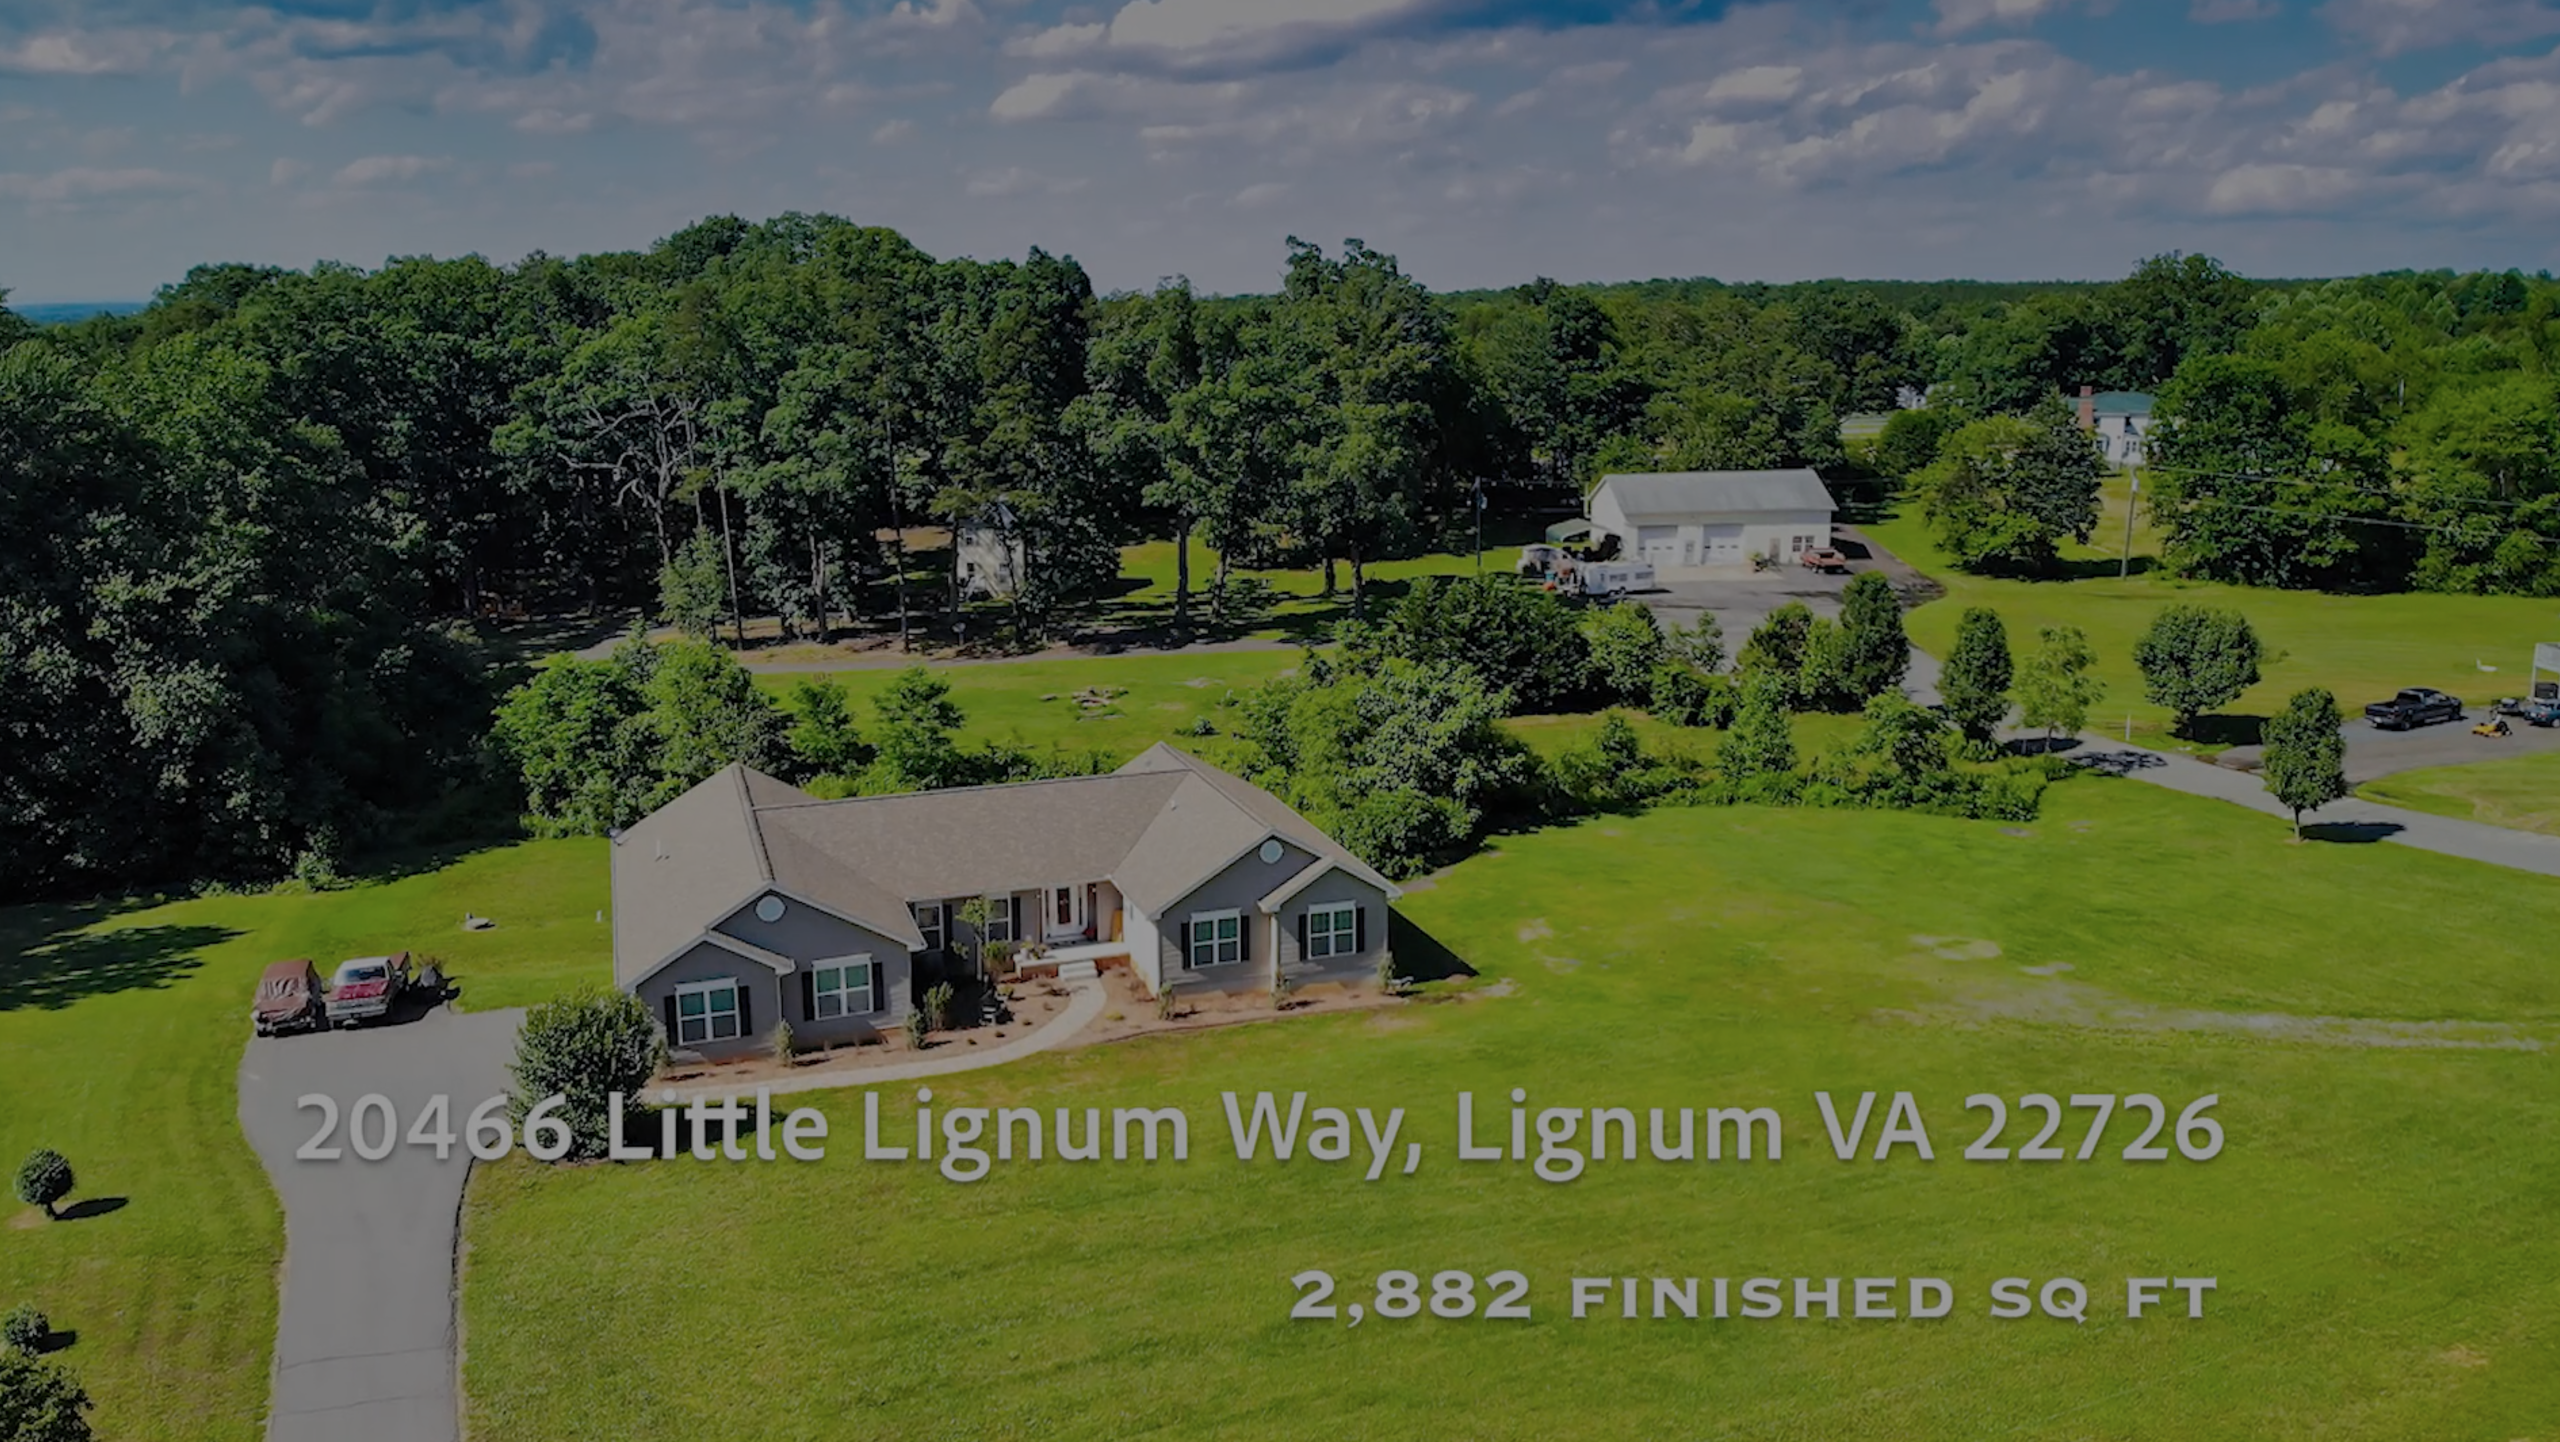 20466 Little Lignum Way • Lignum, VA